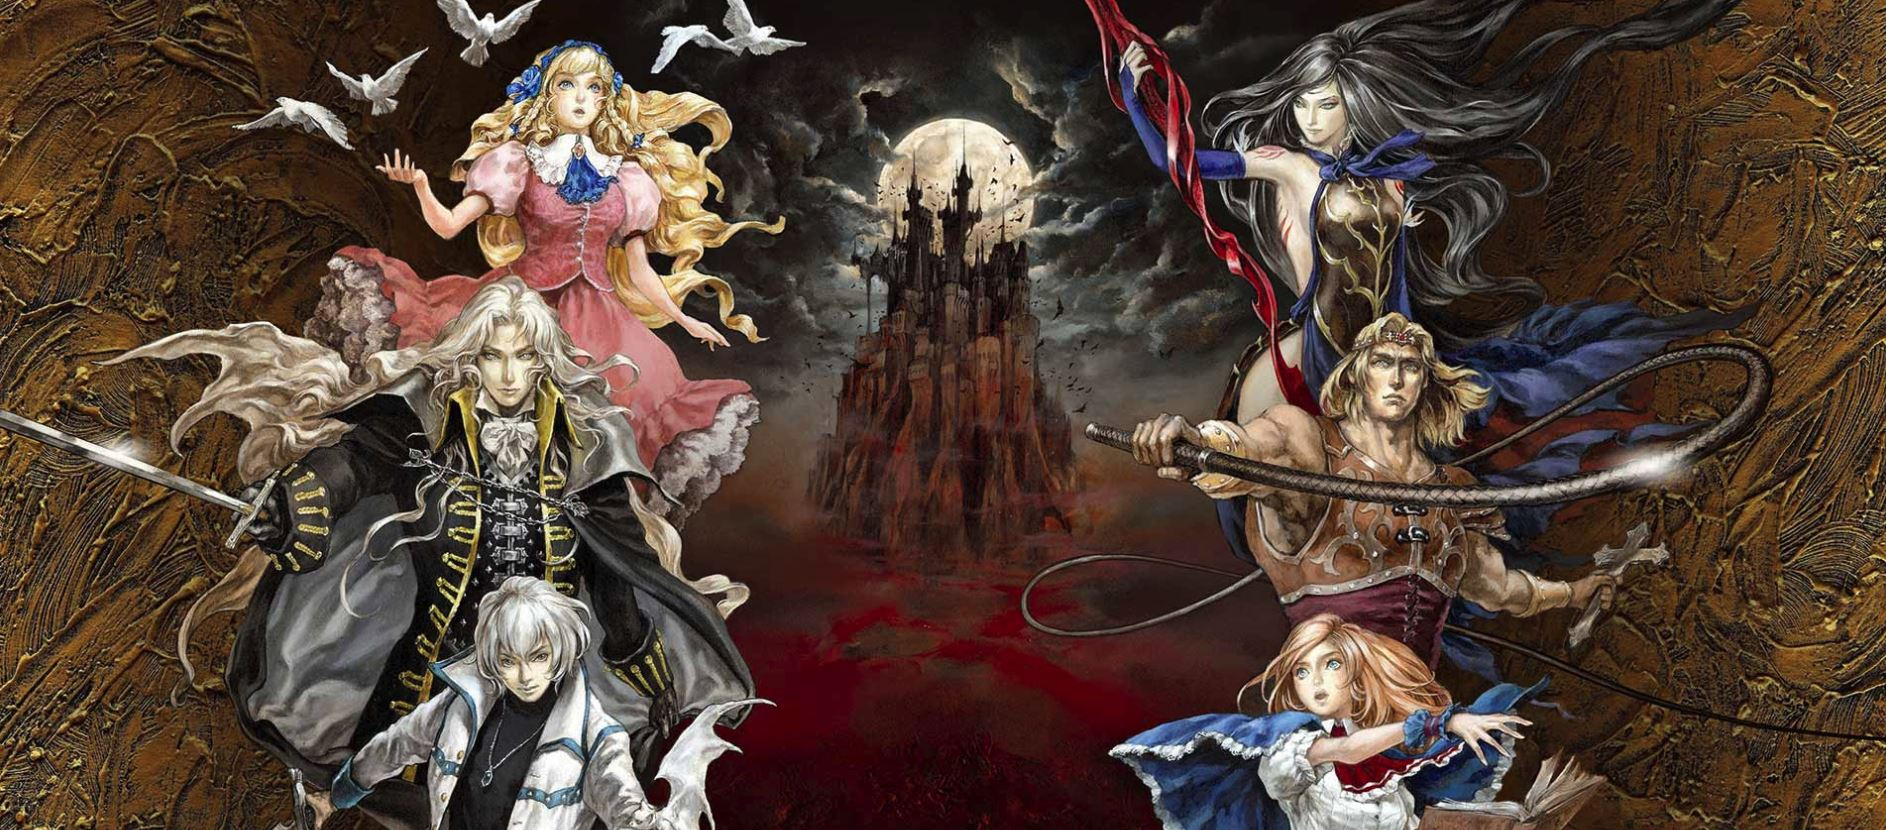 Photo of Konami's New iOS Project Revealed, Castlevania: Grimoire of Souls on Mobile